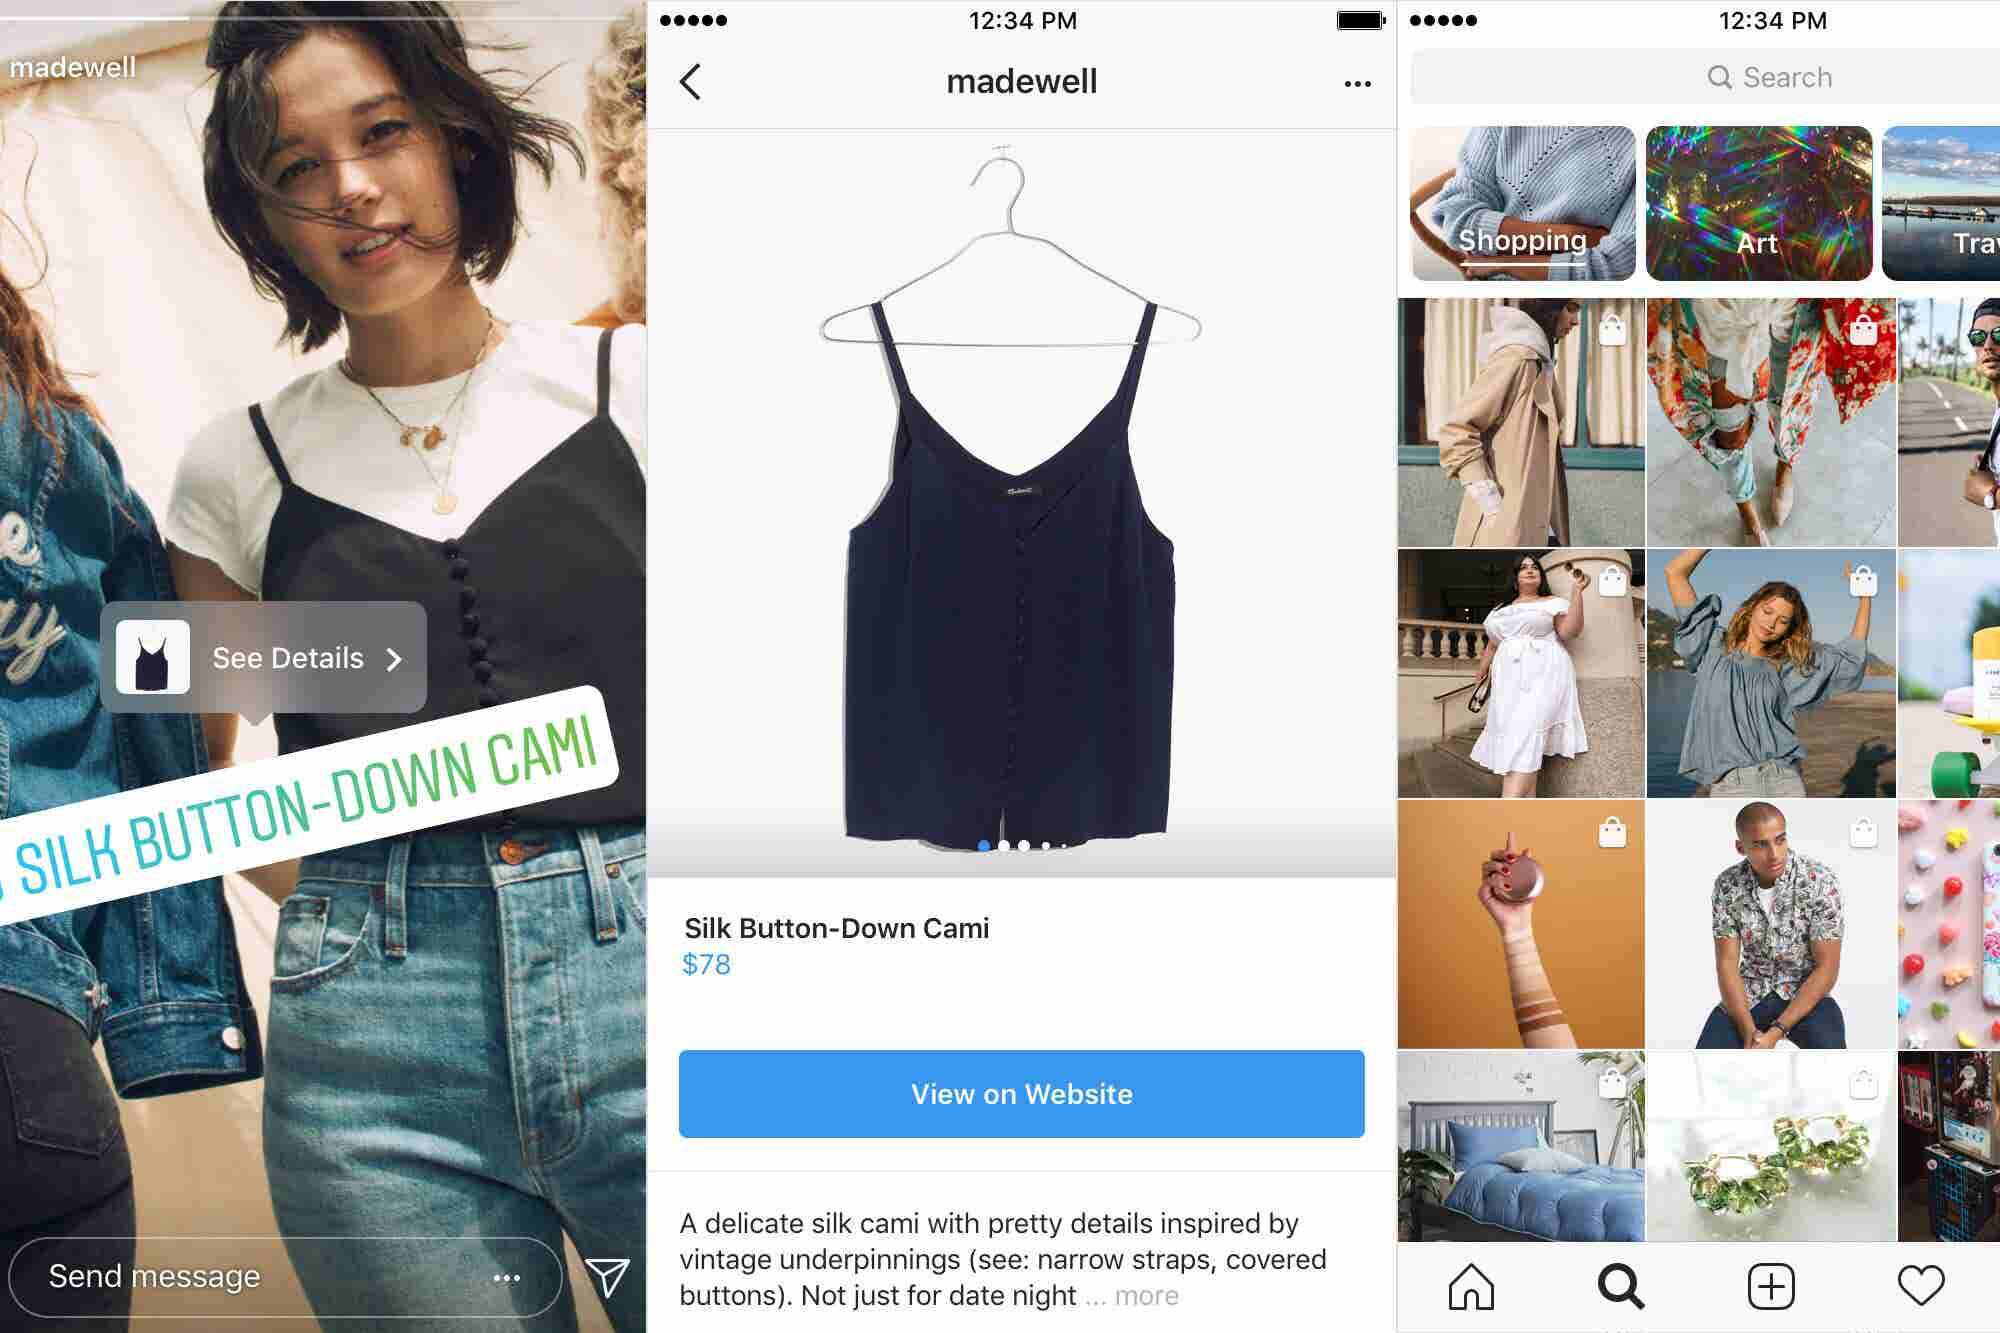 Everything You Need to Know About Instagram's New Shopping Features